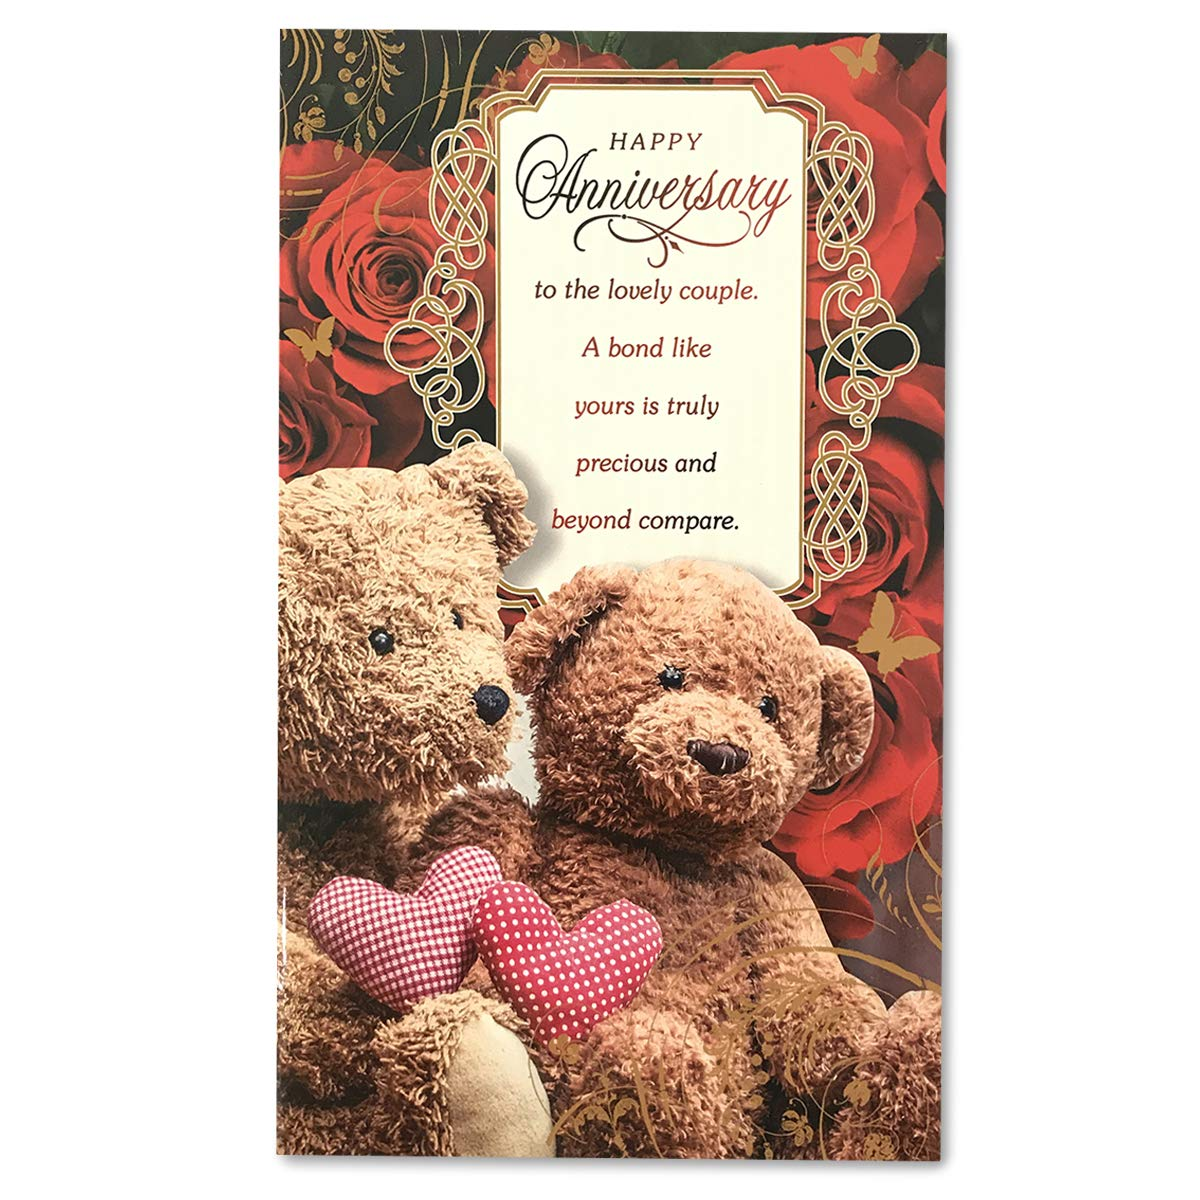 Wedding Anniversary Wishes Greeting Card Happy Anniversary To The Lovely Couple A Bond Like Yours Is Truly Precious And Beyond Compare Amazon In Home Kitchen